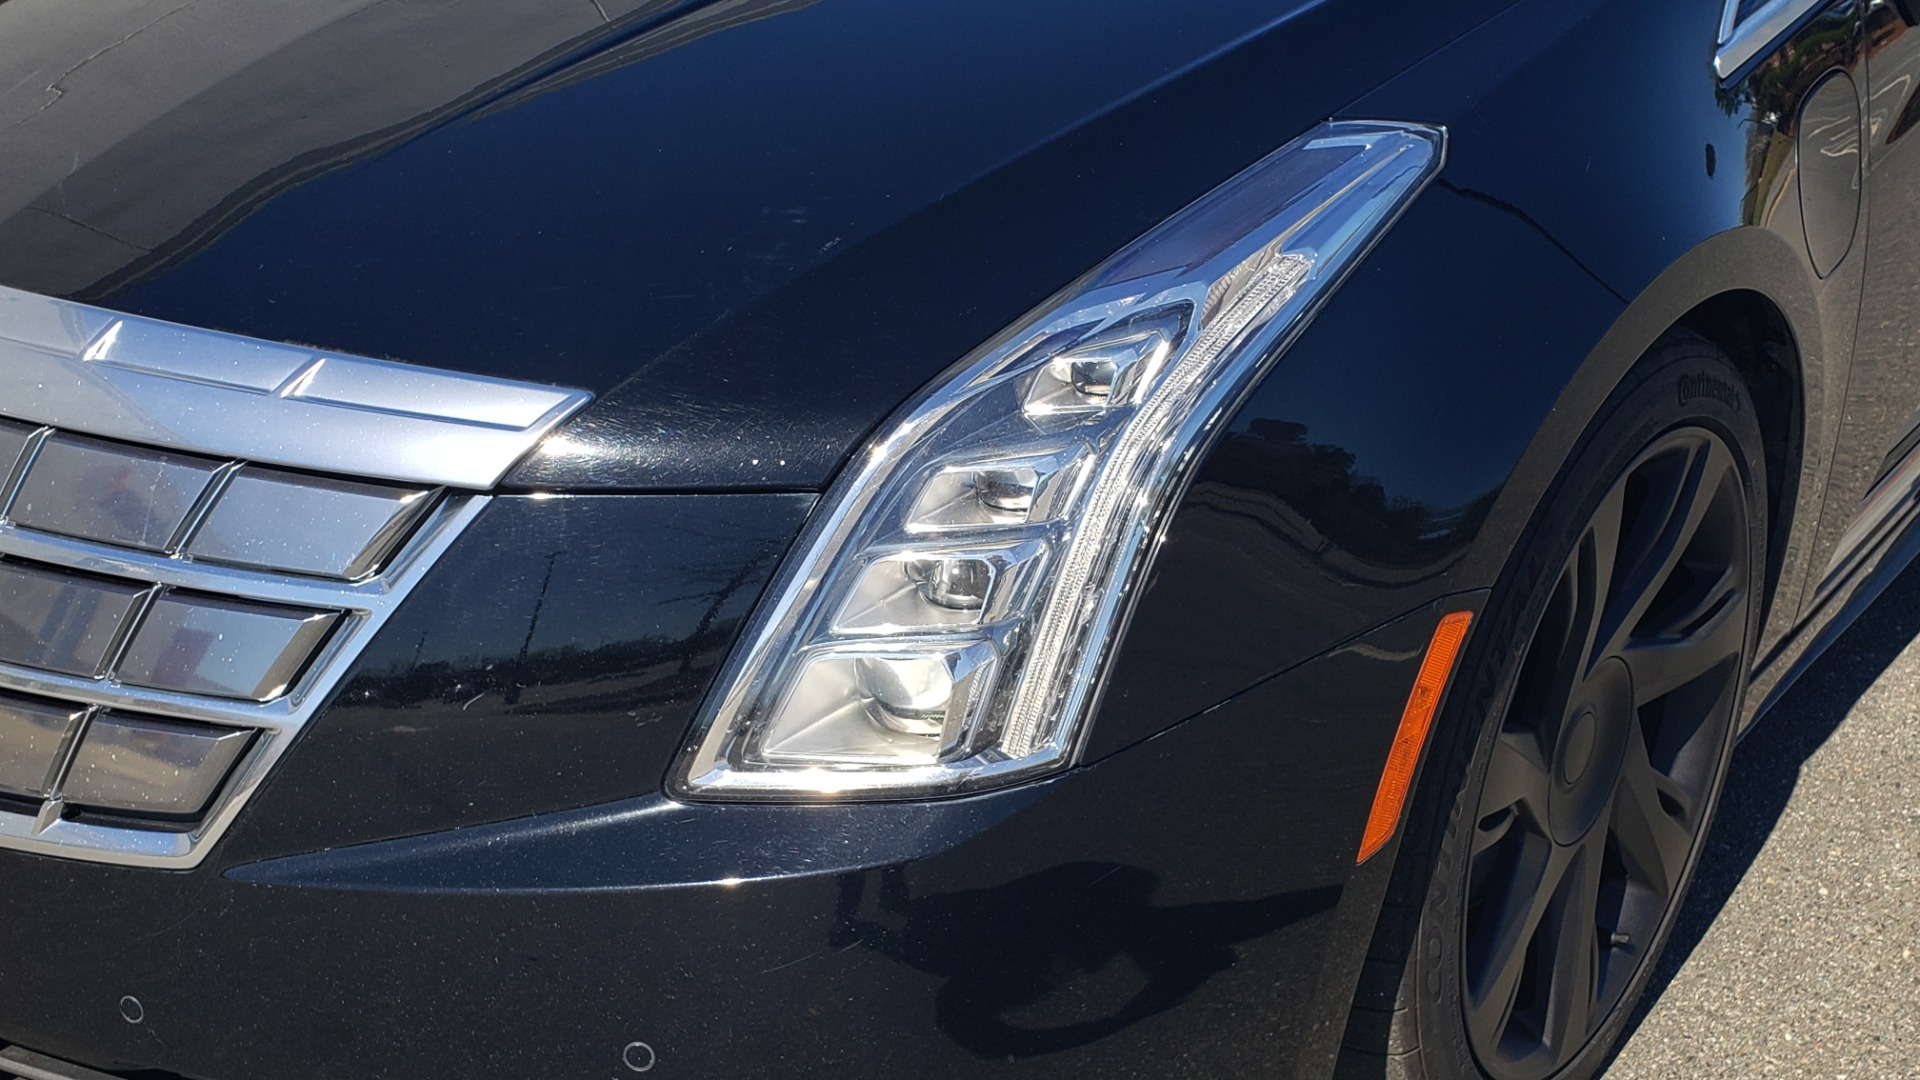 Used 2014 Cadillac ELR 2DR COUPE / HYBRID / NAV / BOSE / HEATED SEATS / REARVIEW for sale $19,995 at Formula Imports in Charlotte NC 28227 21